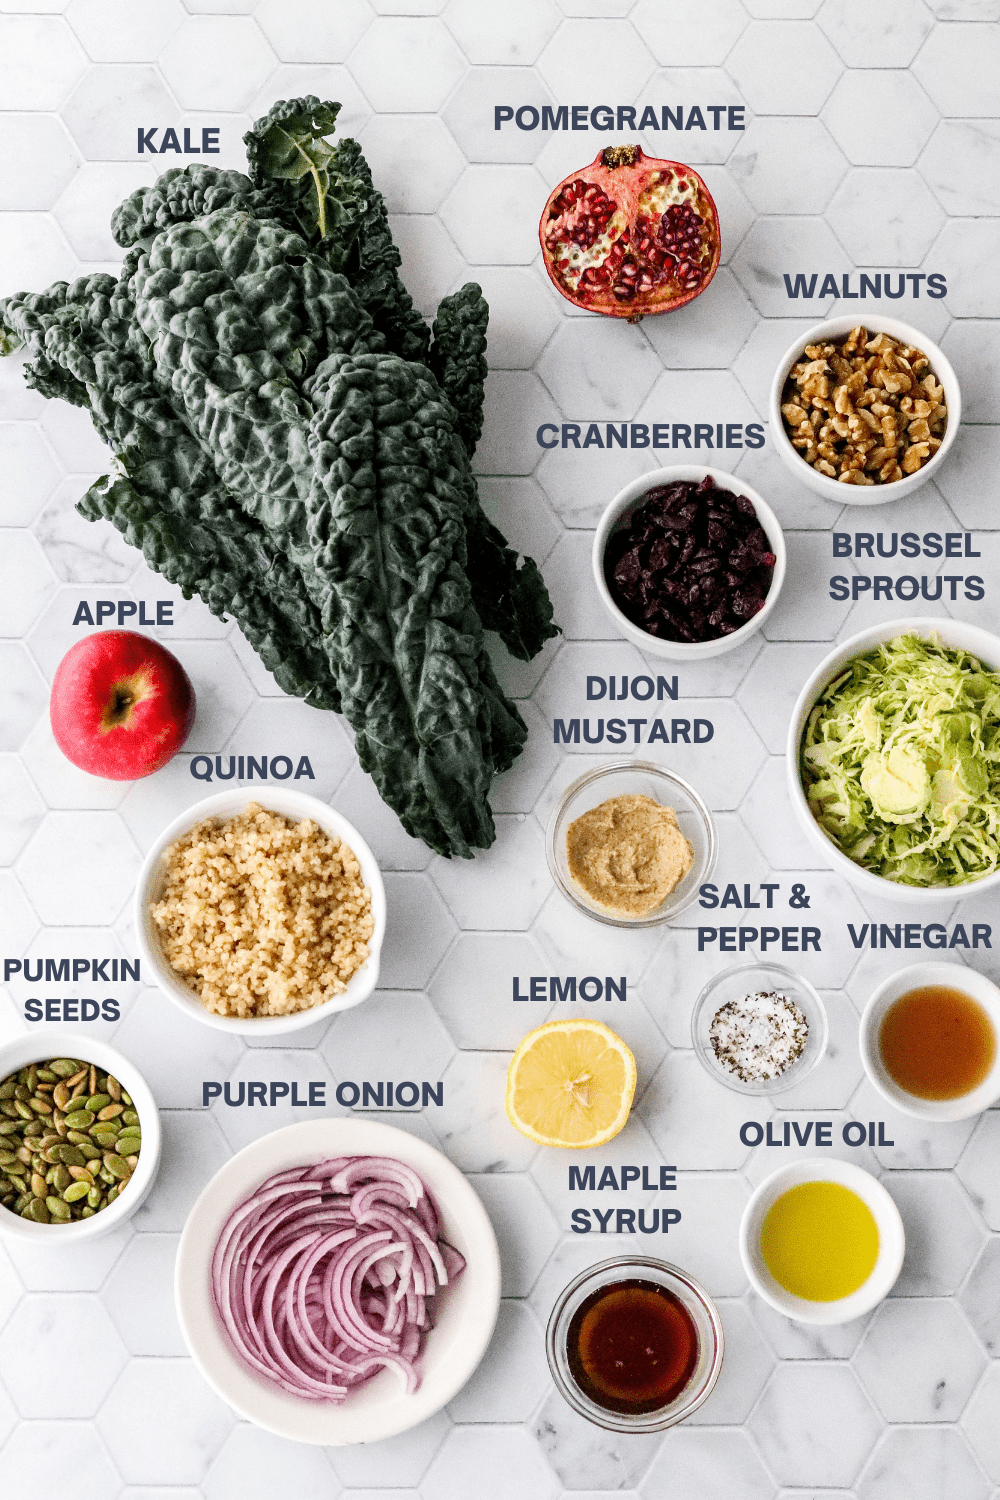 Bunch of kale, sliced pomegranate, bowls of walnuts, dried cranberries, quinoa, sliced Brussel sprouts. vinegar and olive oil around it with a whole apple and bowl of pumpkin seeds and sliced red onion in front of it.